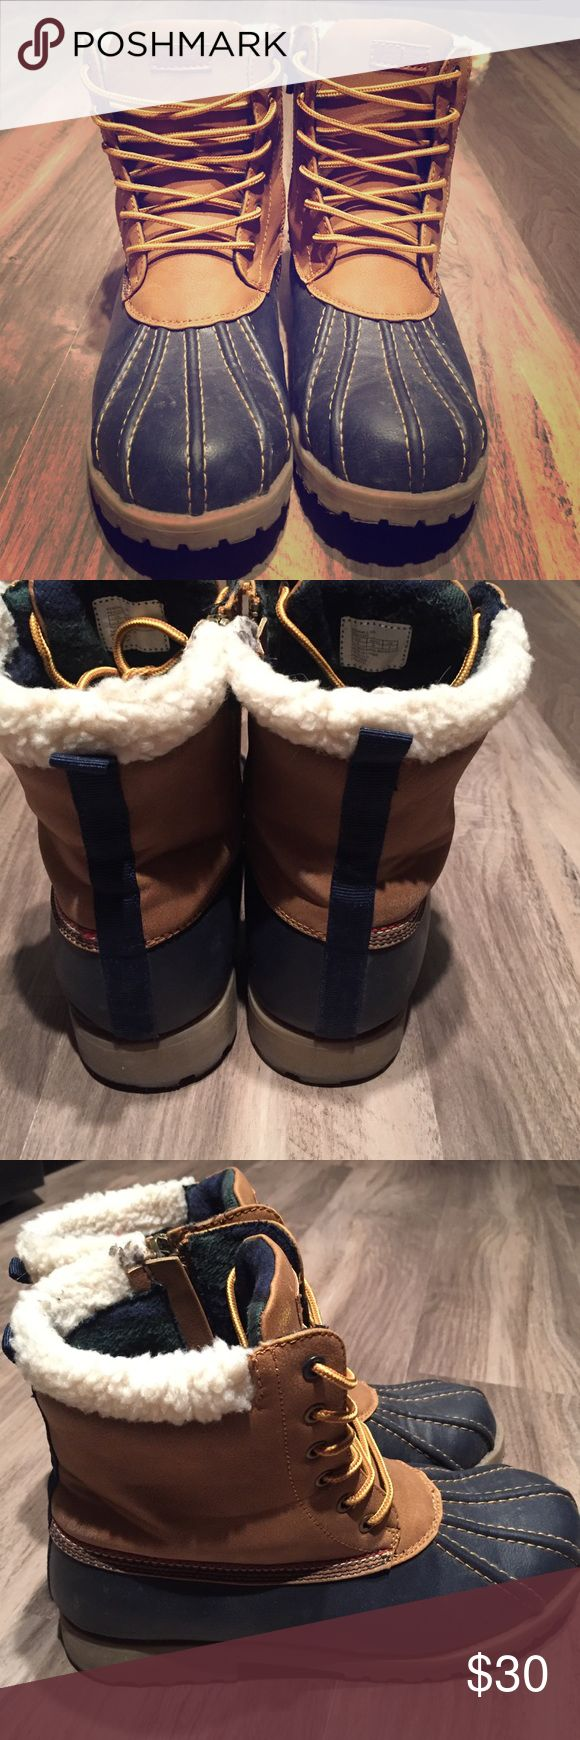 Child's size 5 Tommy Hilfiger winter boots! make an offer, I'll likely accept it! Gently worn zip-up winter boots! Tommy Hilfiger. Tommy Hilfiger Shoes Boots